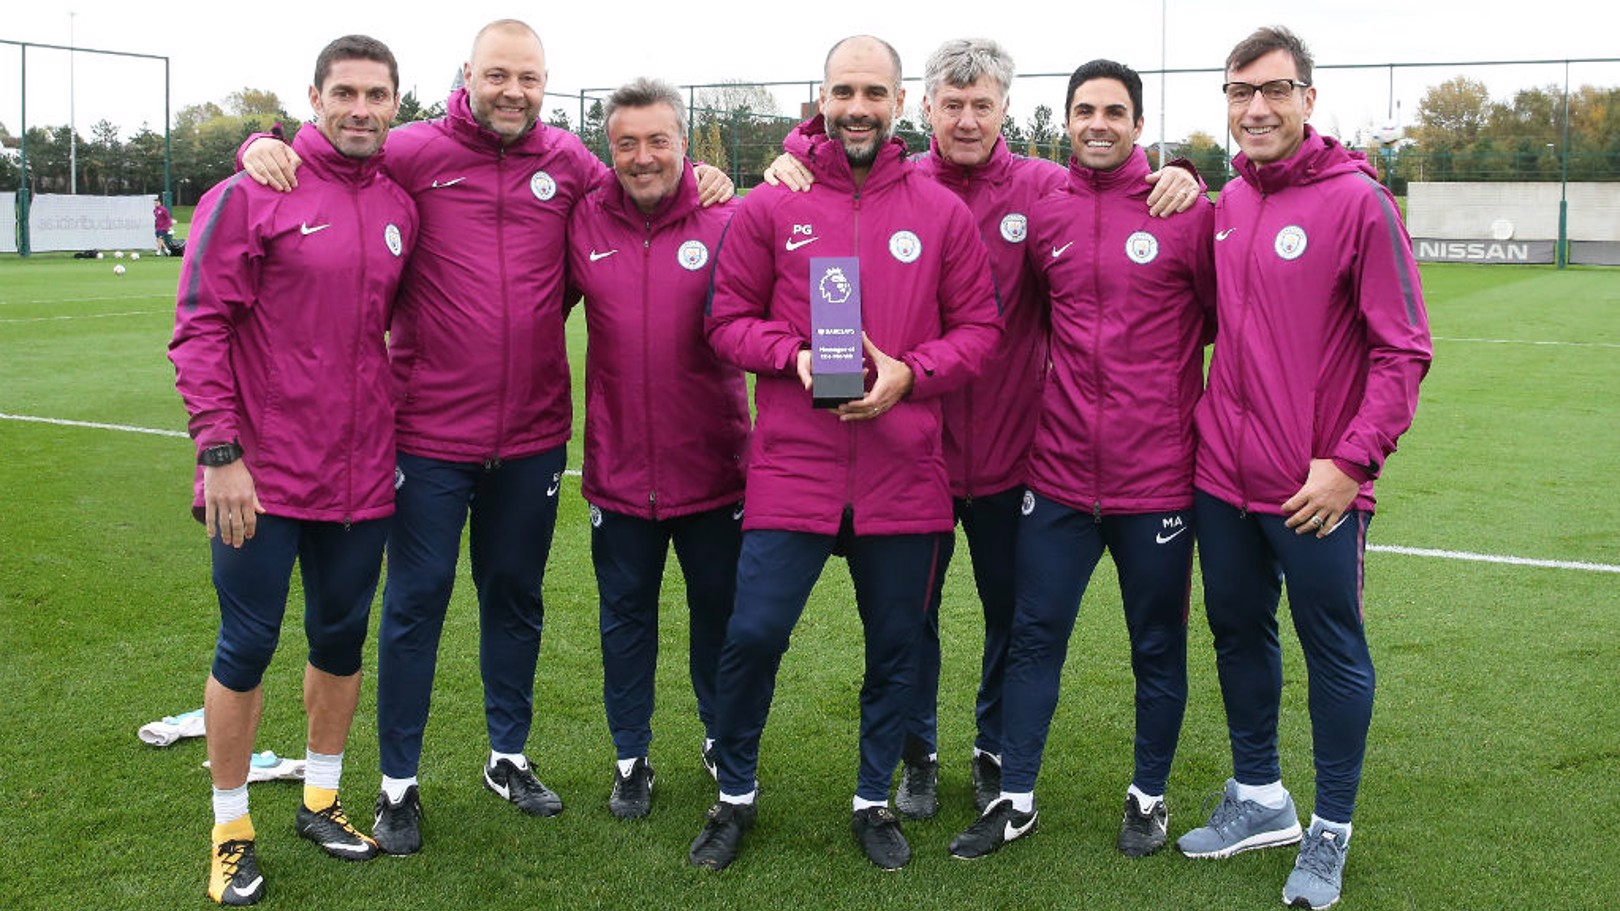 PERFECT: Pep Guardiola has been recognised for City's fine September that saw them win all four of their Premier League fixtures